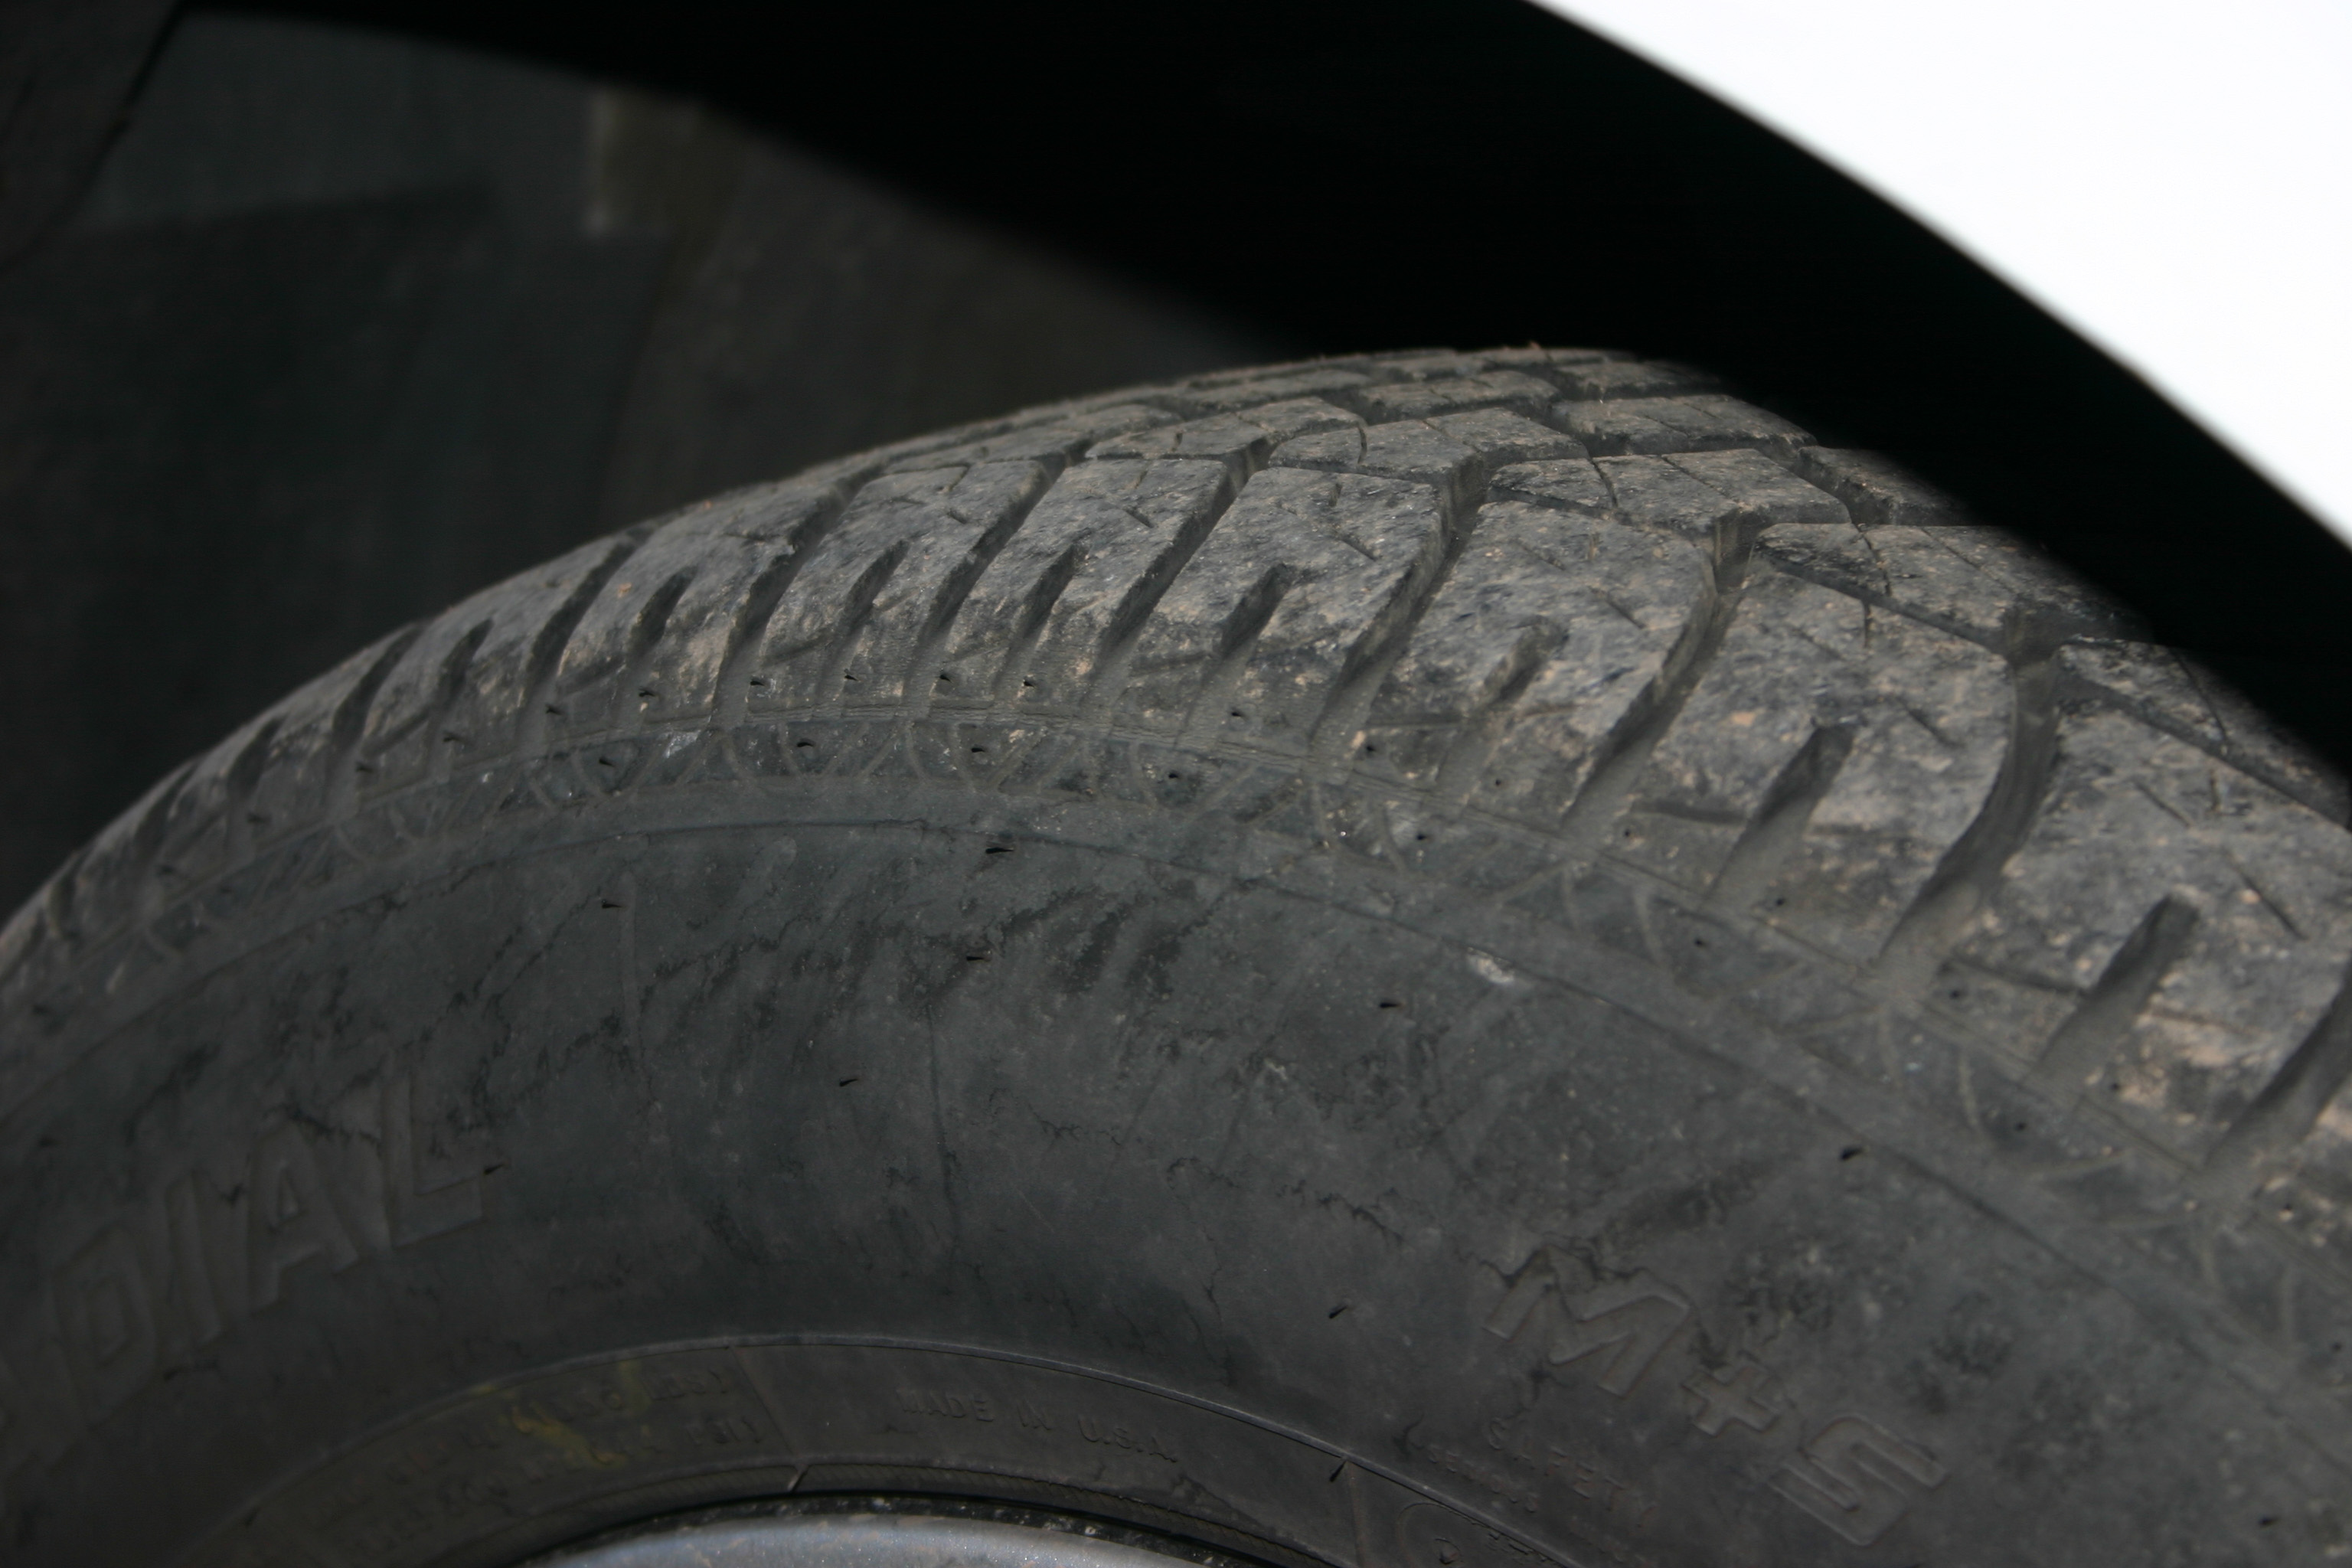 If one tire is worn out more than the rest, it's still best to replace all four tires.